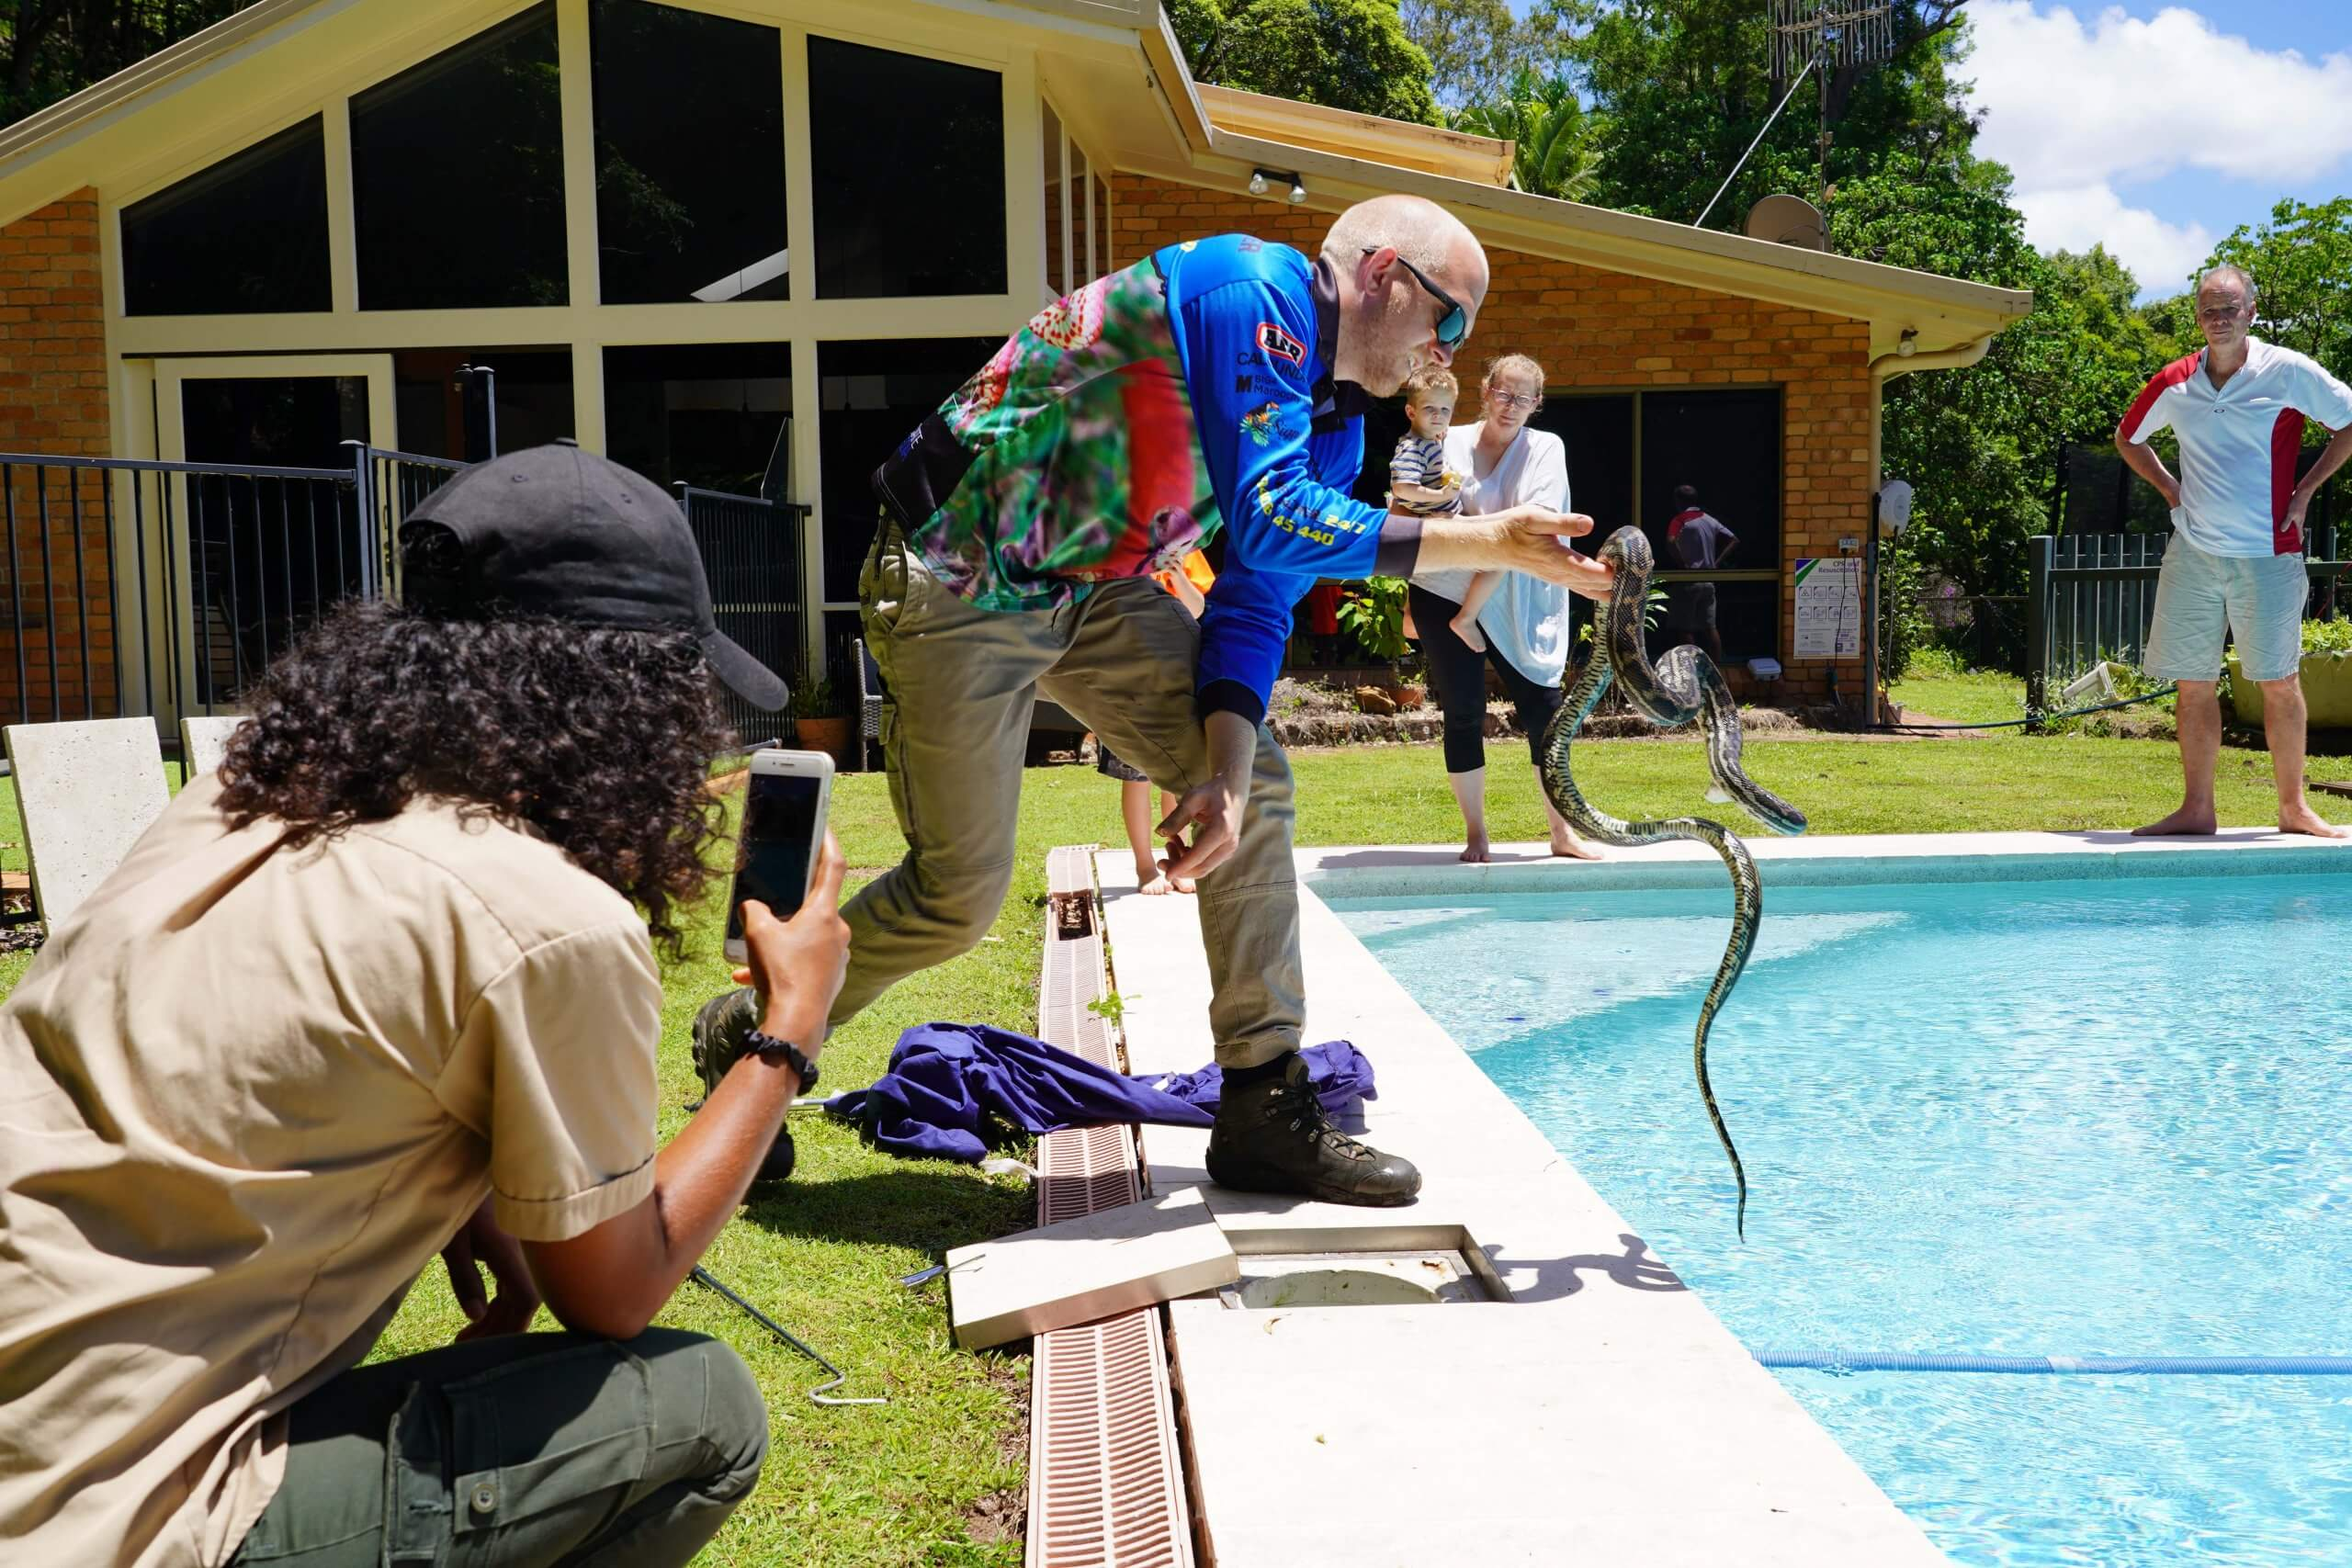 Watching on a python is pulled out of pool